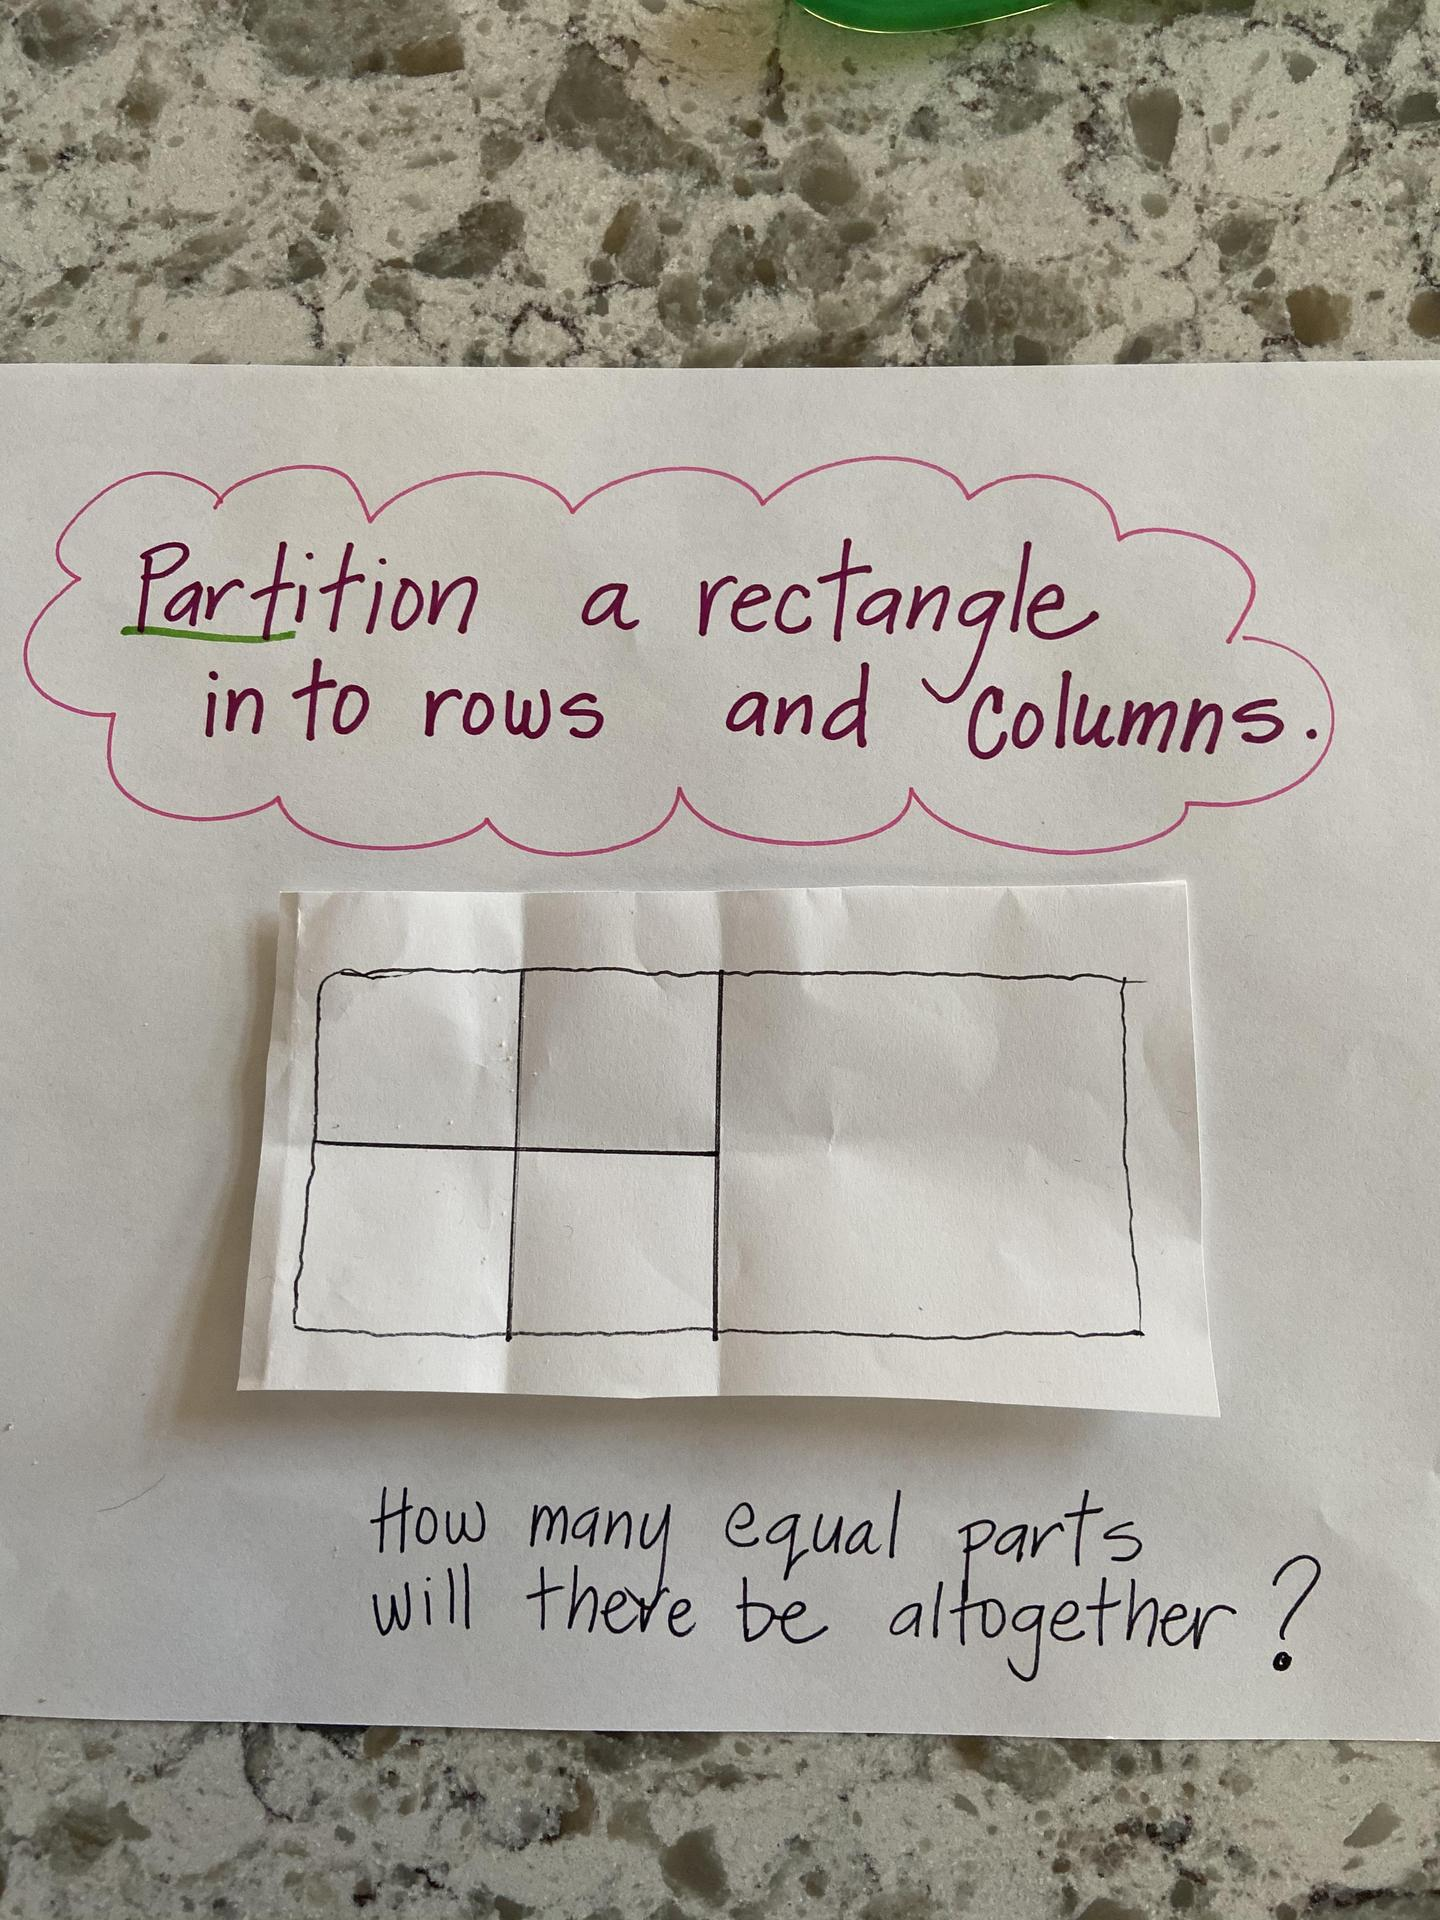 Partitioning a Rectangle